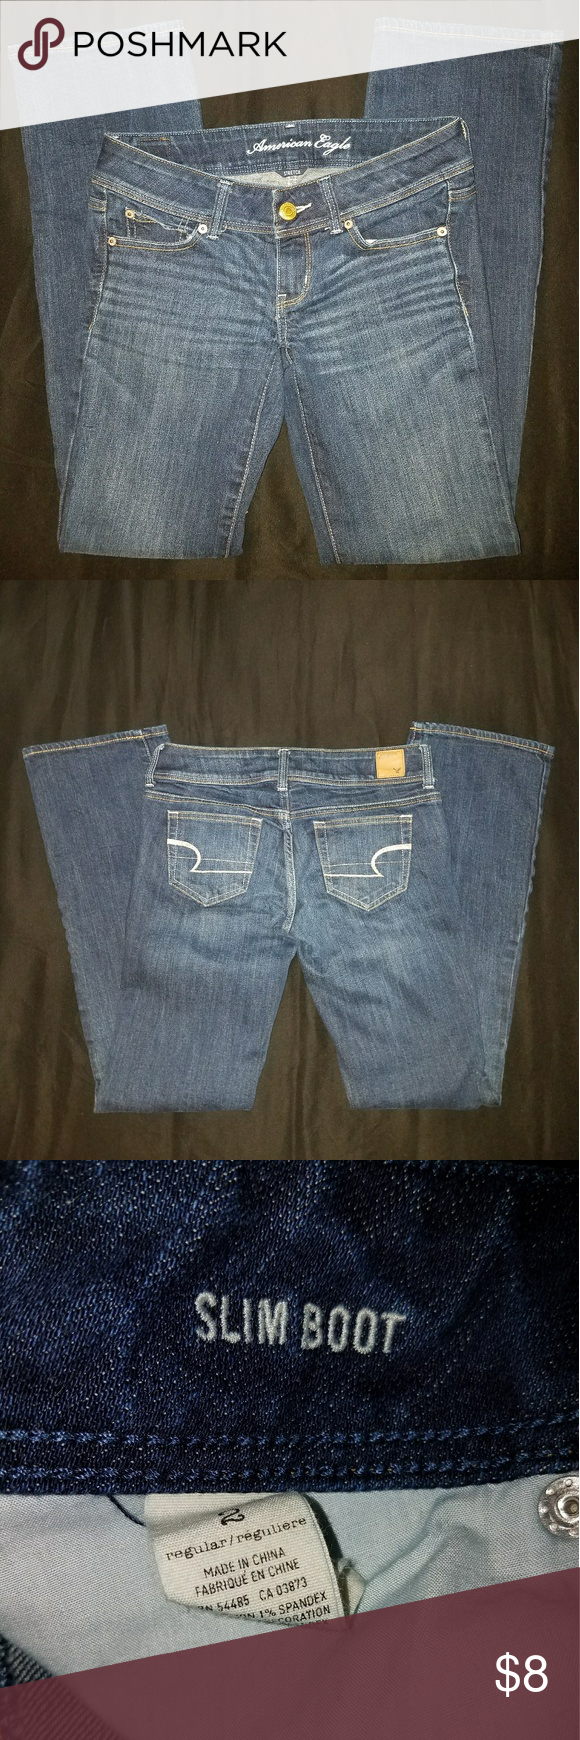 American Eagle Slim Boot Jeans Size 2R American Eagle Jeans, Slim Boot, Dark wash, Size 2 Regular. Never worn, washed and tried on. Too big, too long. Perfect like new condition. Make me an offer! Comes from a pet friendly home. American Eagle Outfitters Jeans Boot Cut